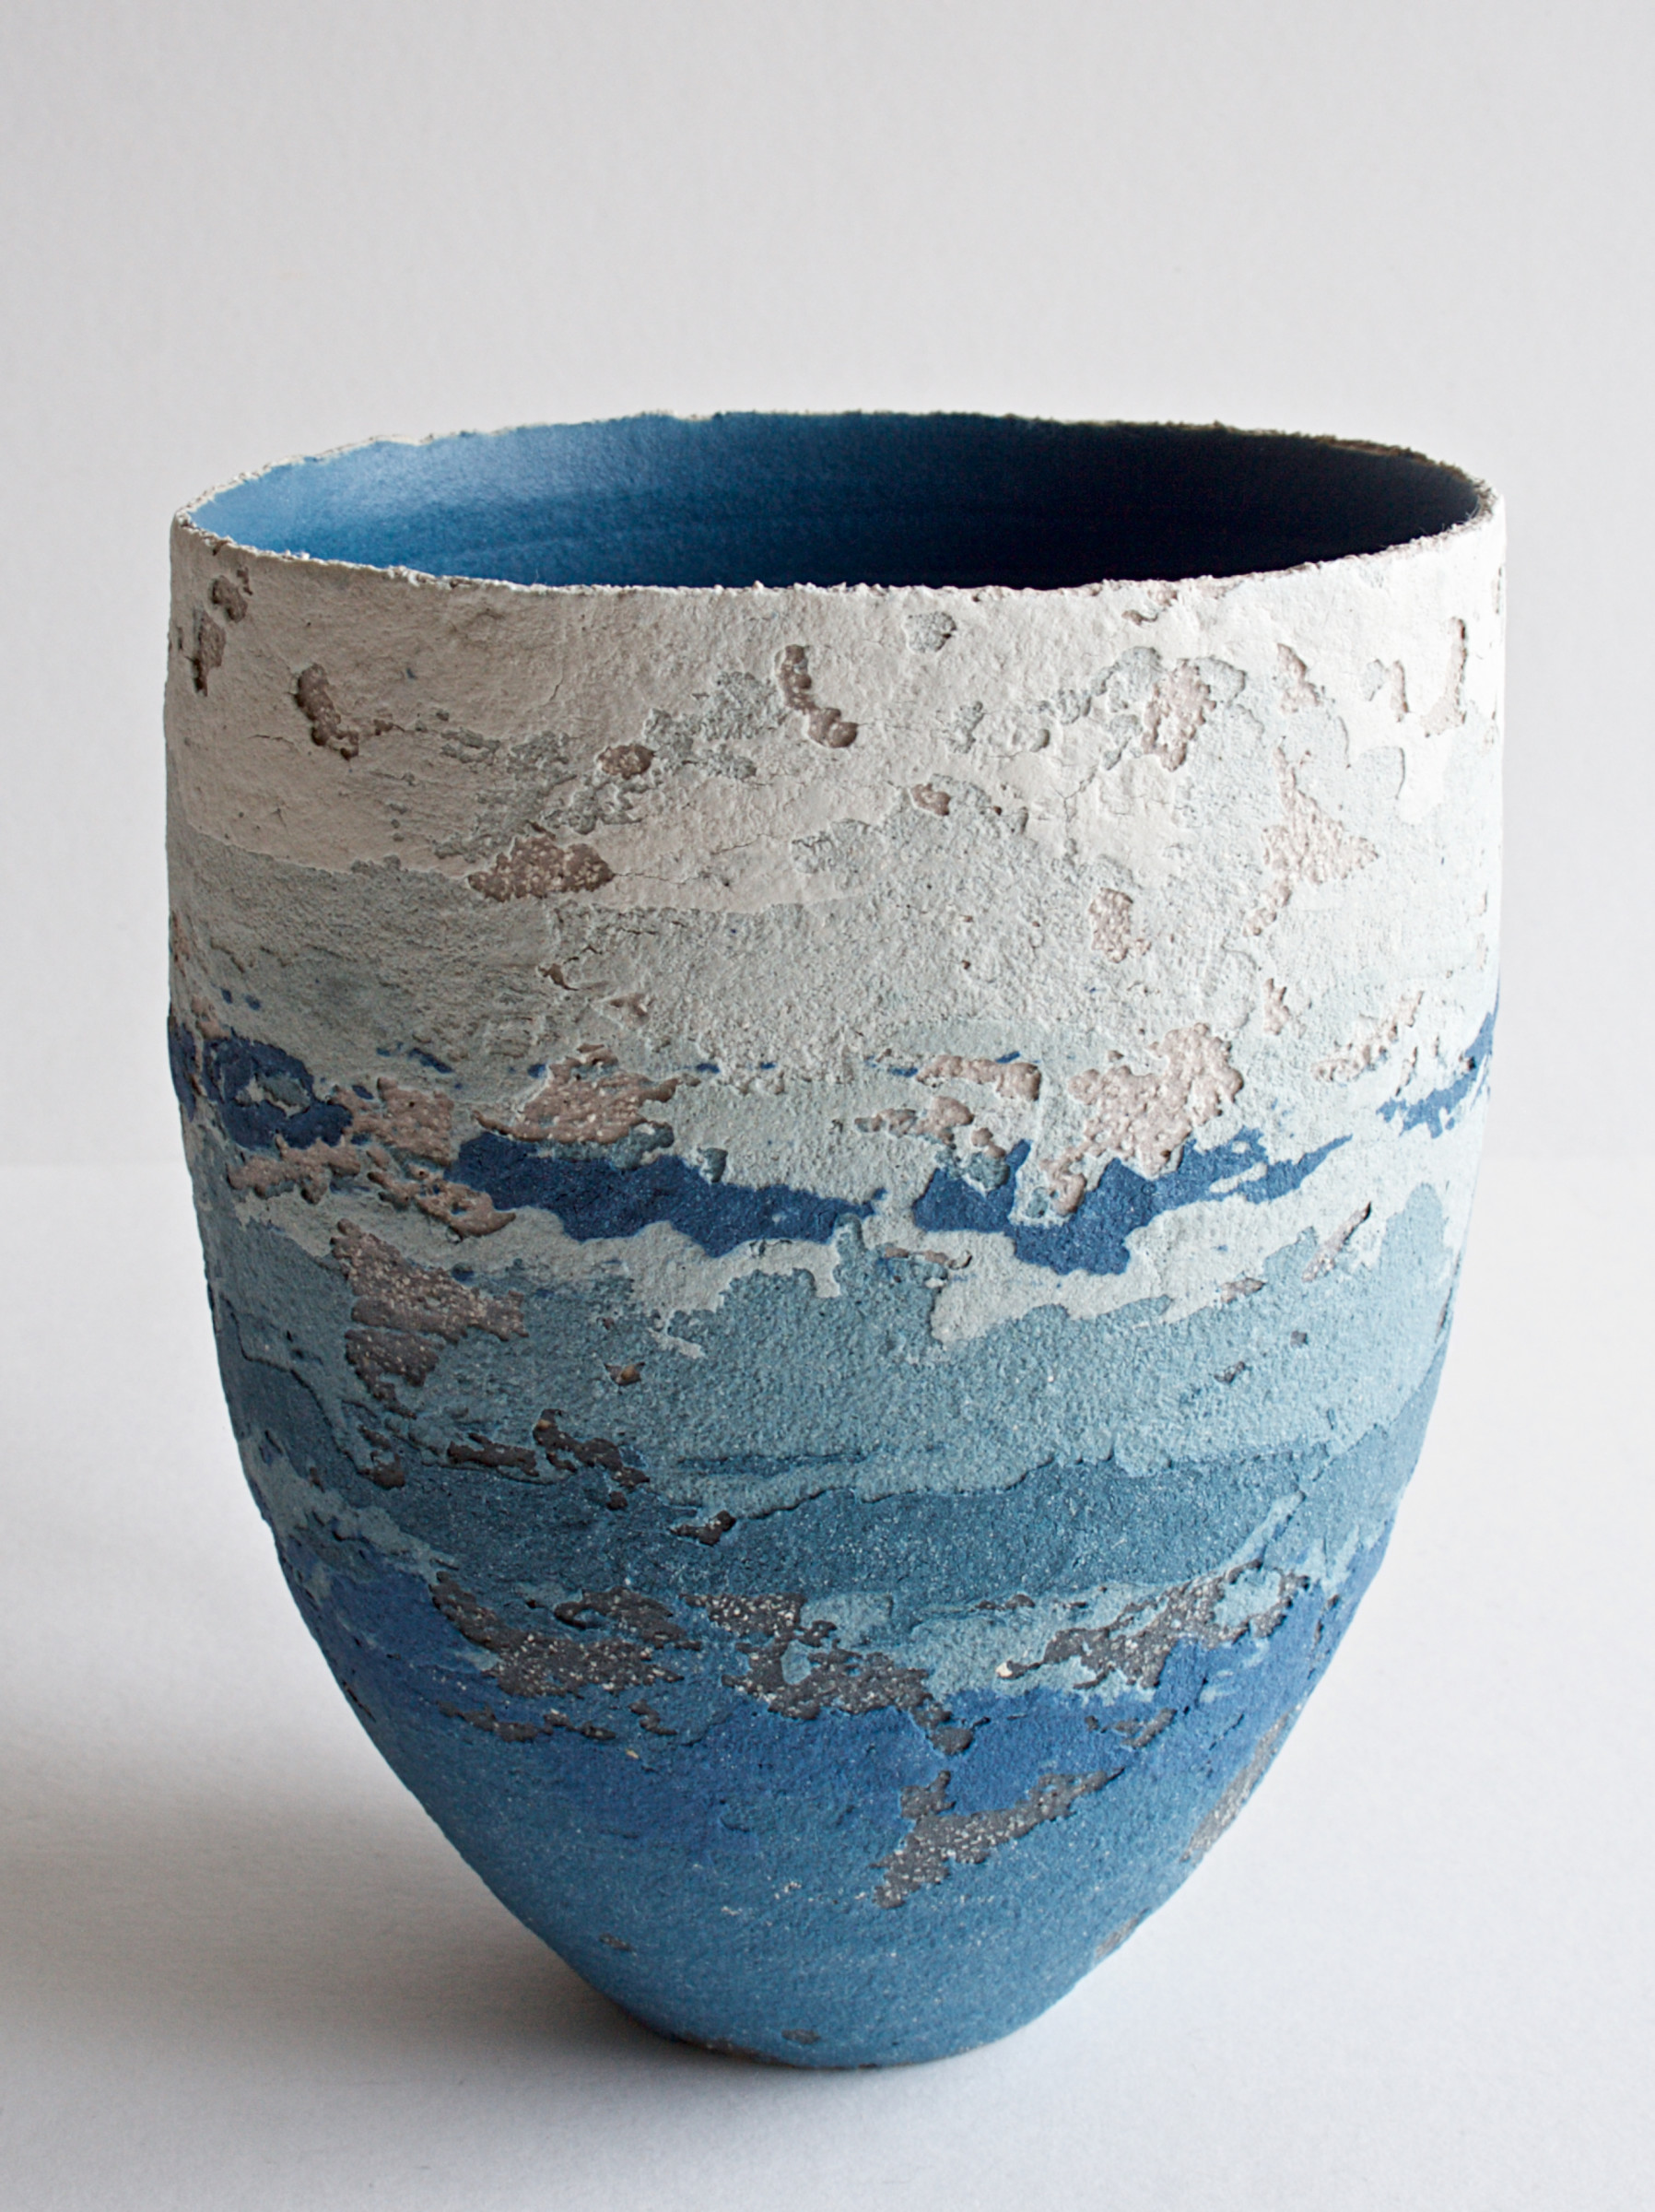 "<span class=""link fancybox-details-link""><a href=""/artists/79-clare-conrad/works/6929-clare-conrad-vessel-2020/"">View Detail Page</a></span><div class=""artist""><strong>Clare Conrad</strong></div> <div class=""title""><em>Vessel</em>, 2020</div> <div class=""medium"">Stoneware</div> <div class=""dimensions"">h. 13 cm</div><div class=""price"">£132.00</div><div class=""copyright_line"">Copyright The Artist</div>"